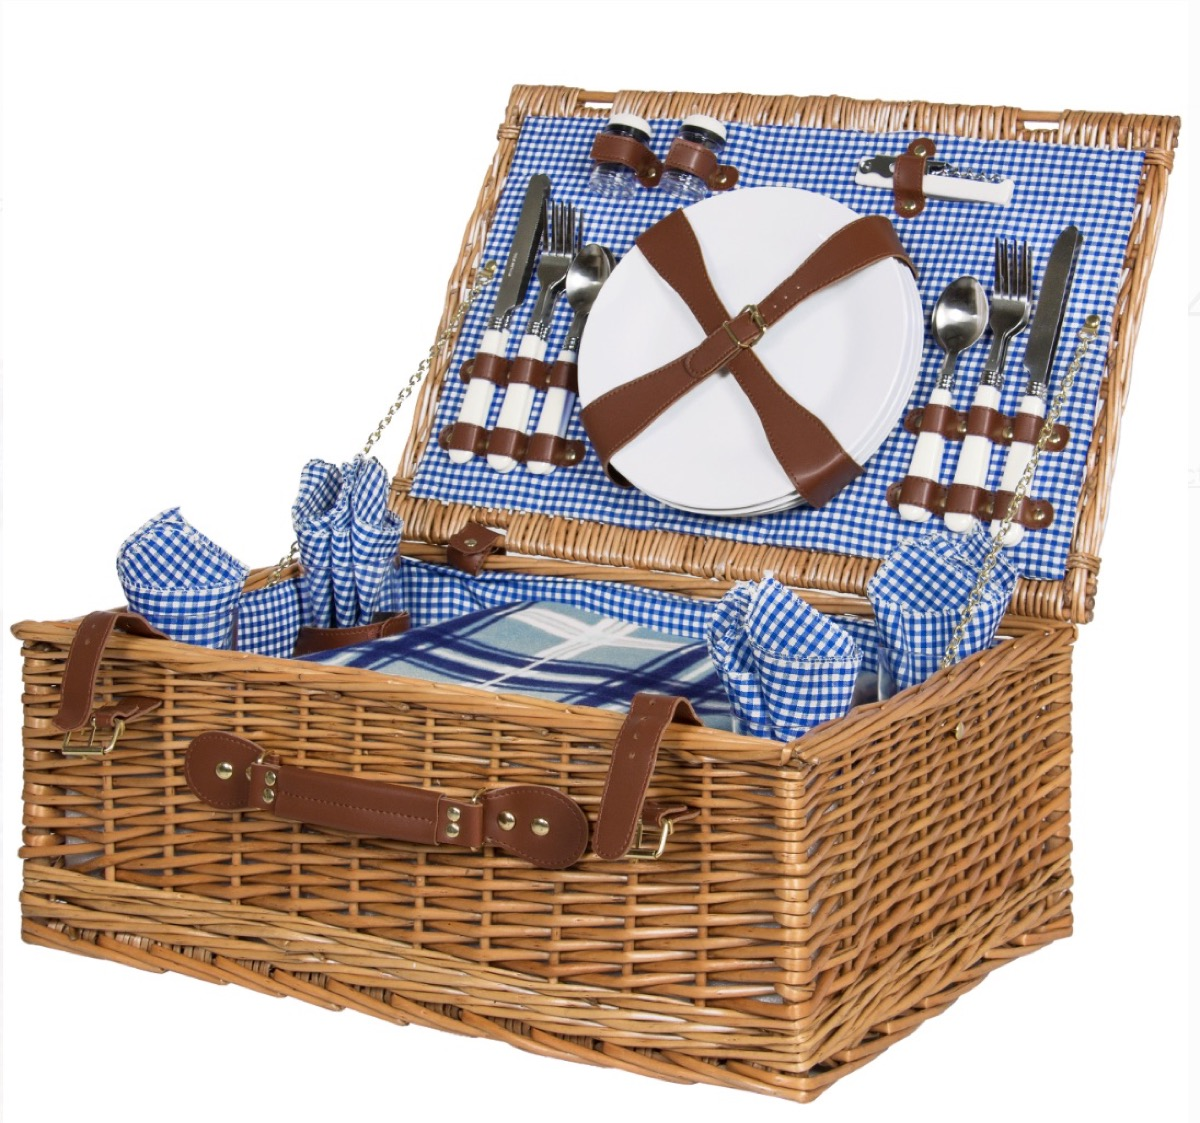 wicker picnic basket with blue lining, picnic essentials